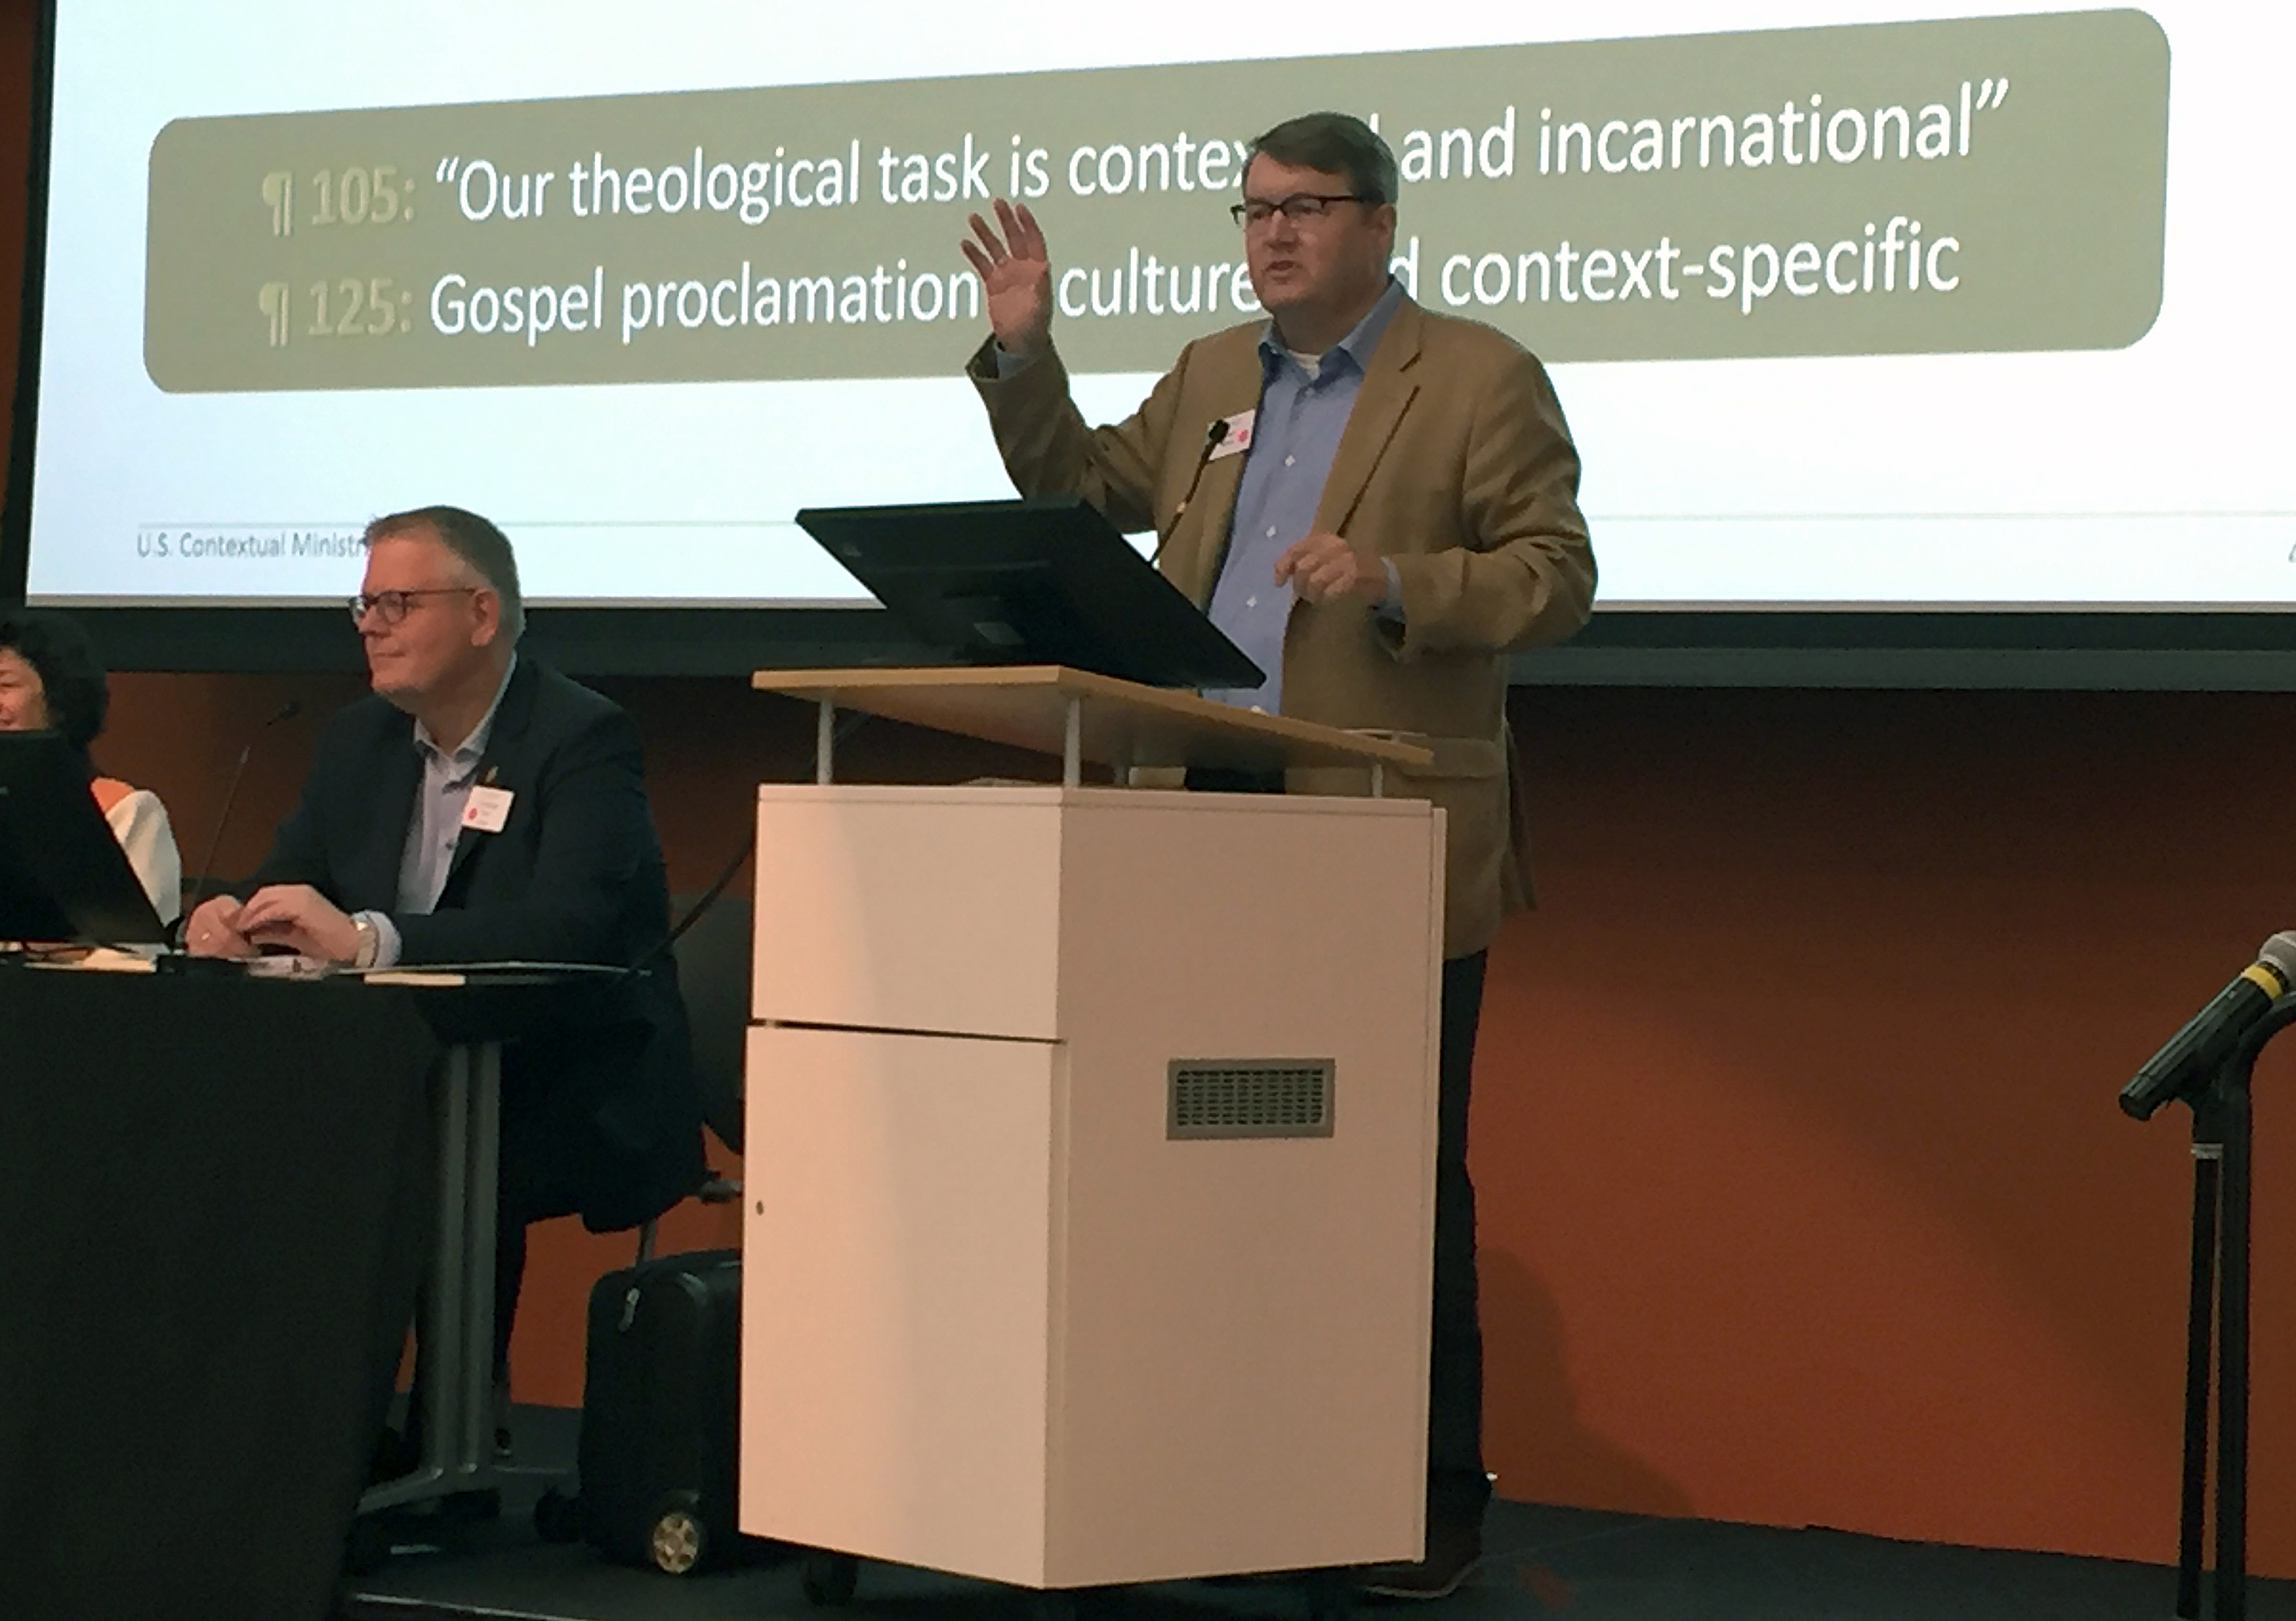 The Rev. Brian Milford speaks at the Oct. 31-Nov. 2 meeting of the Connectional Table in Atlanta. Photo by Heather Hahn, UMNS.